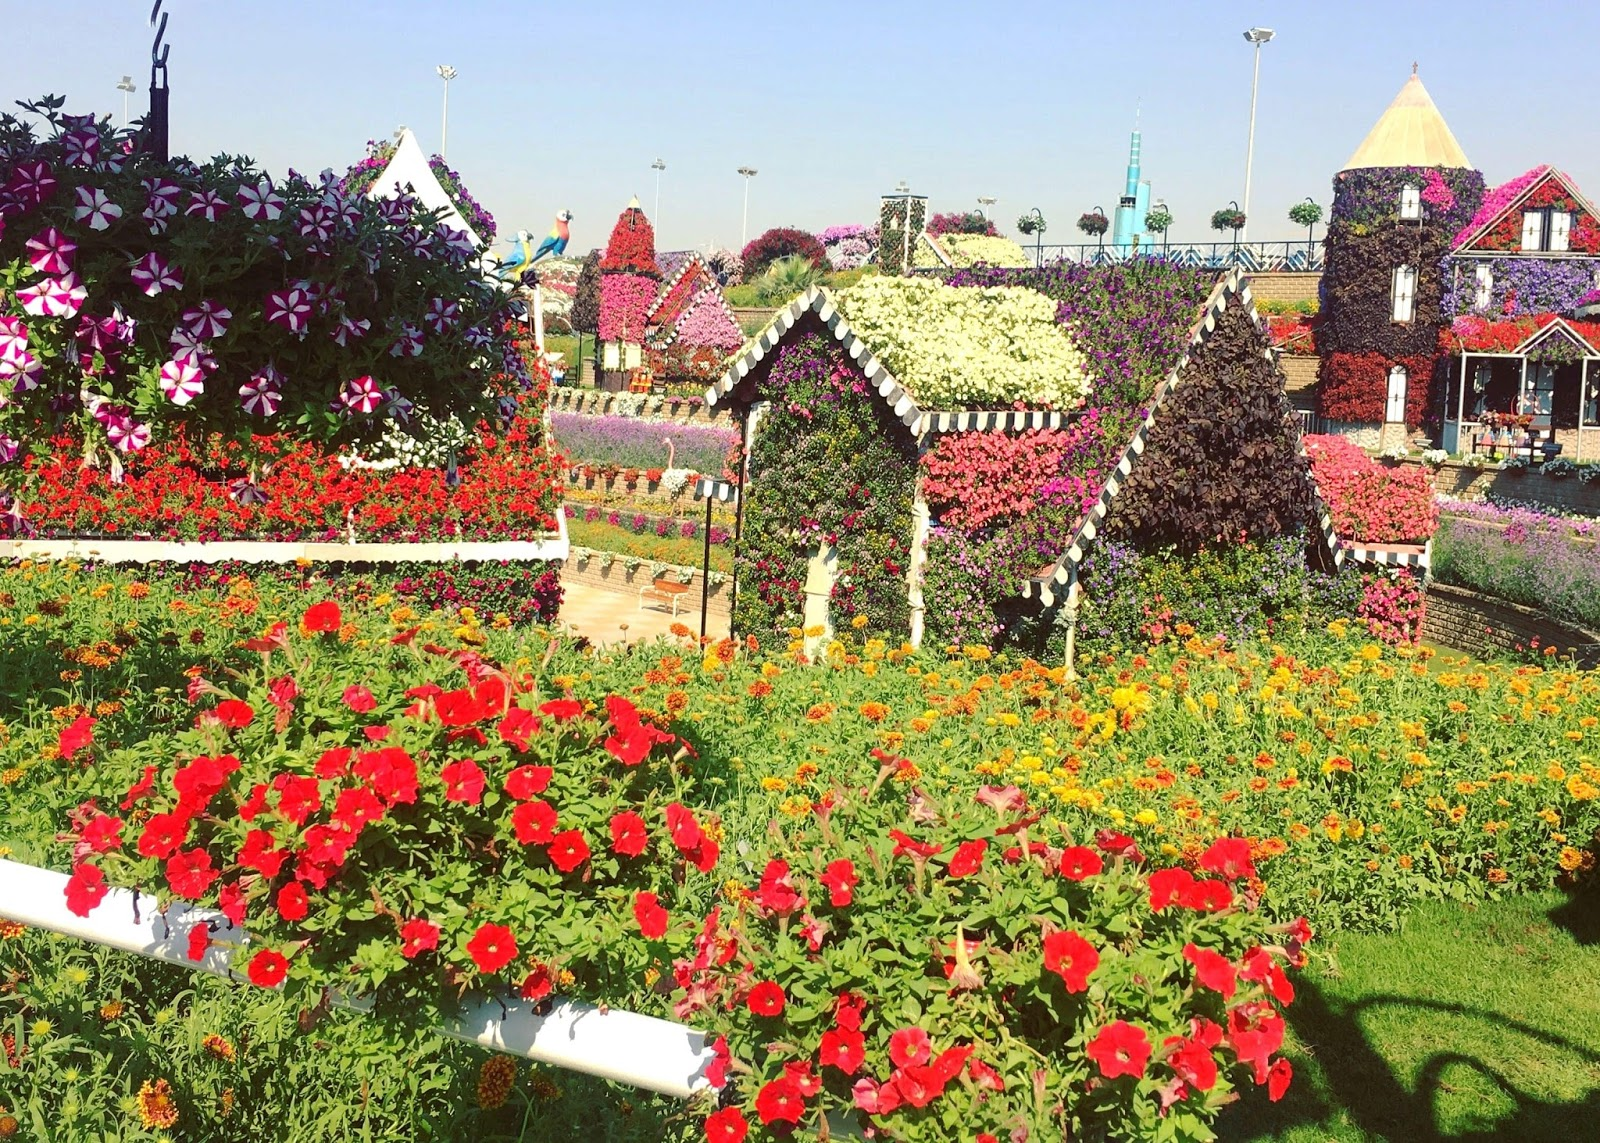 Plan For a Trip to Dubai Miracle Garden